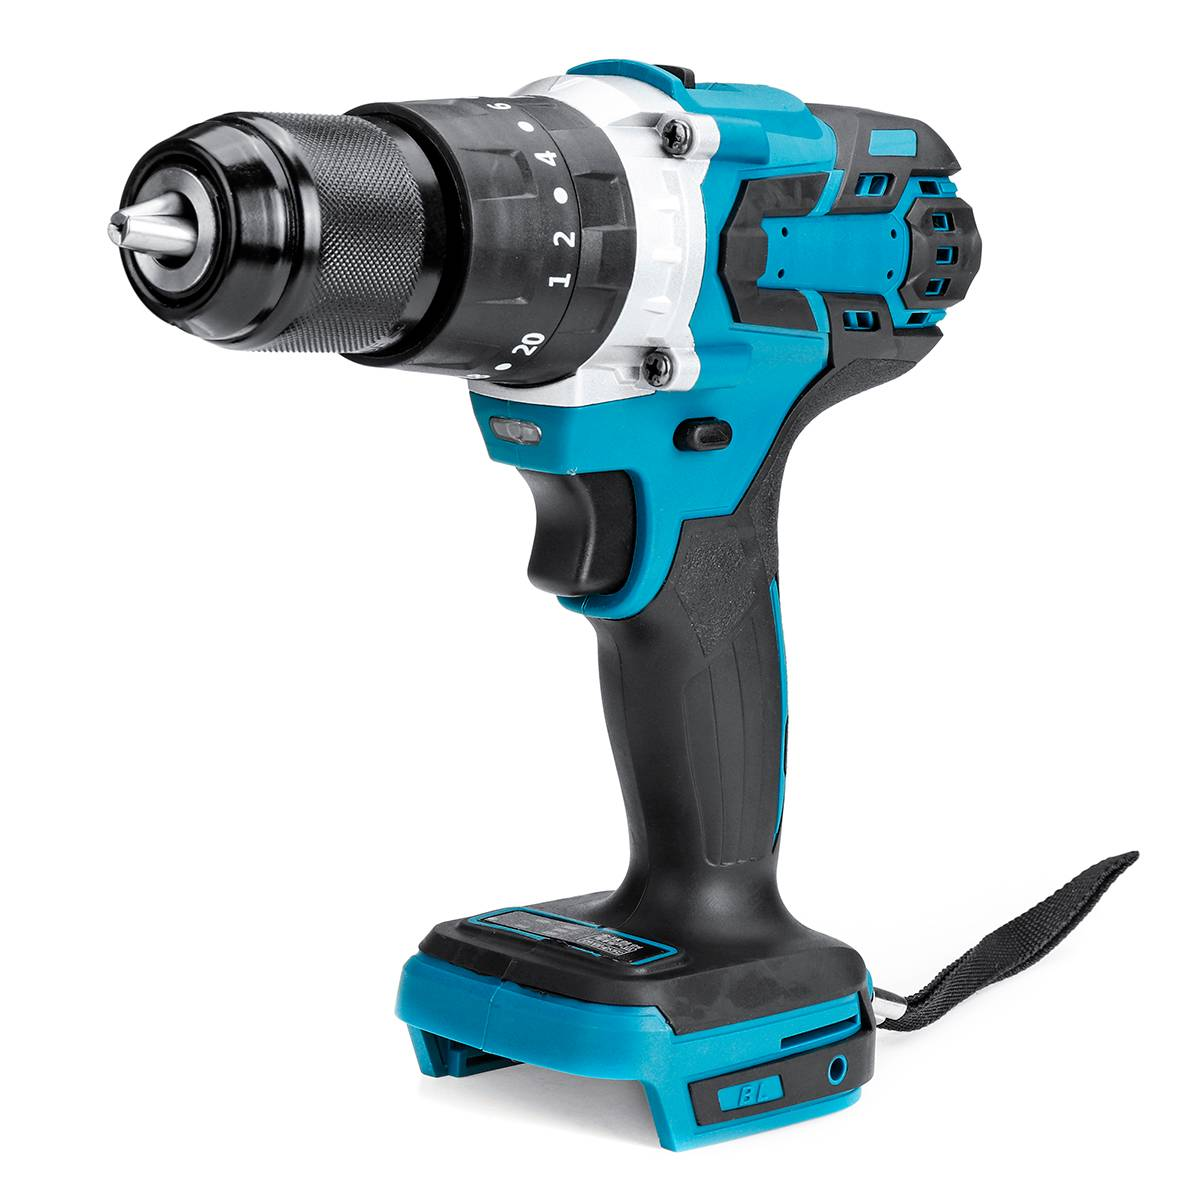 18V Brushless Electric Screwdriver Cordless Drill 120 NM Torque Impact Drill Without Battery Suitable for Makita Battery